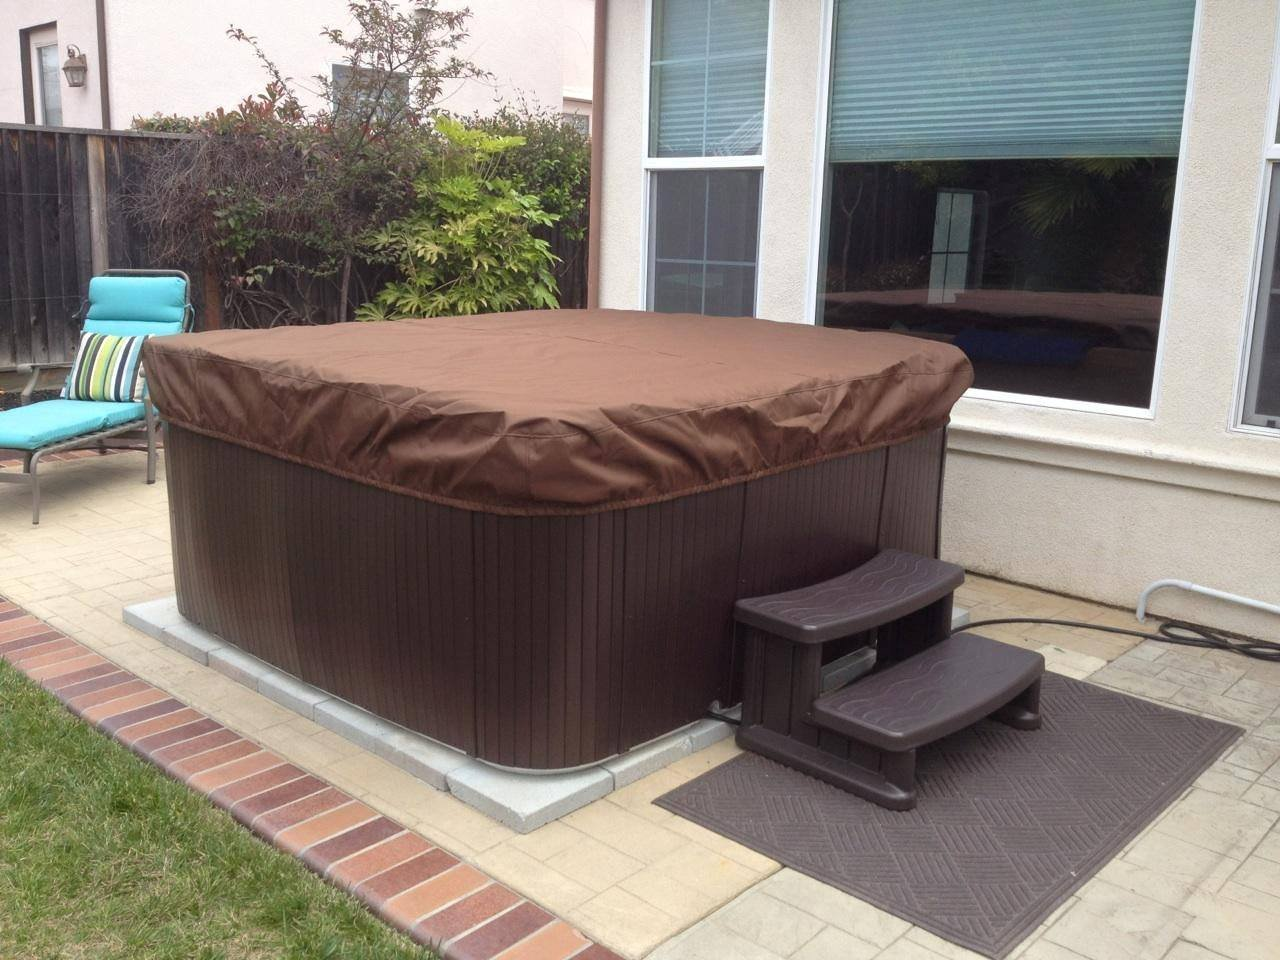 Amazon.com: SPA Hot Tub covercap Tapa encargo fabricado en ...